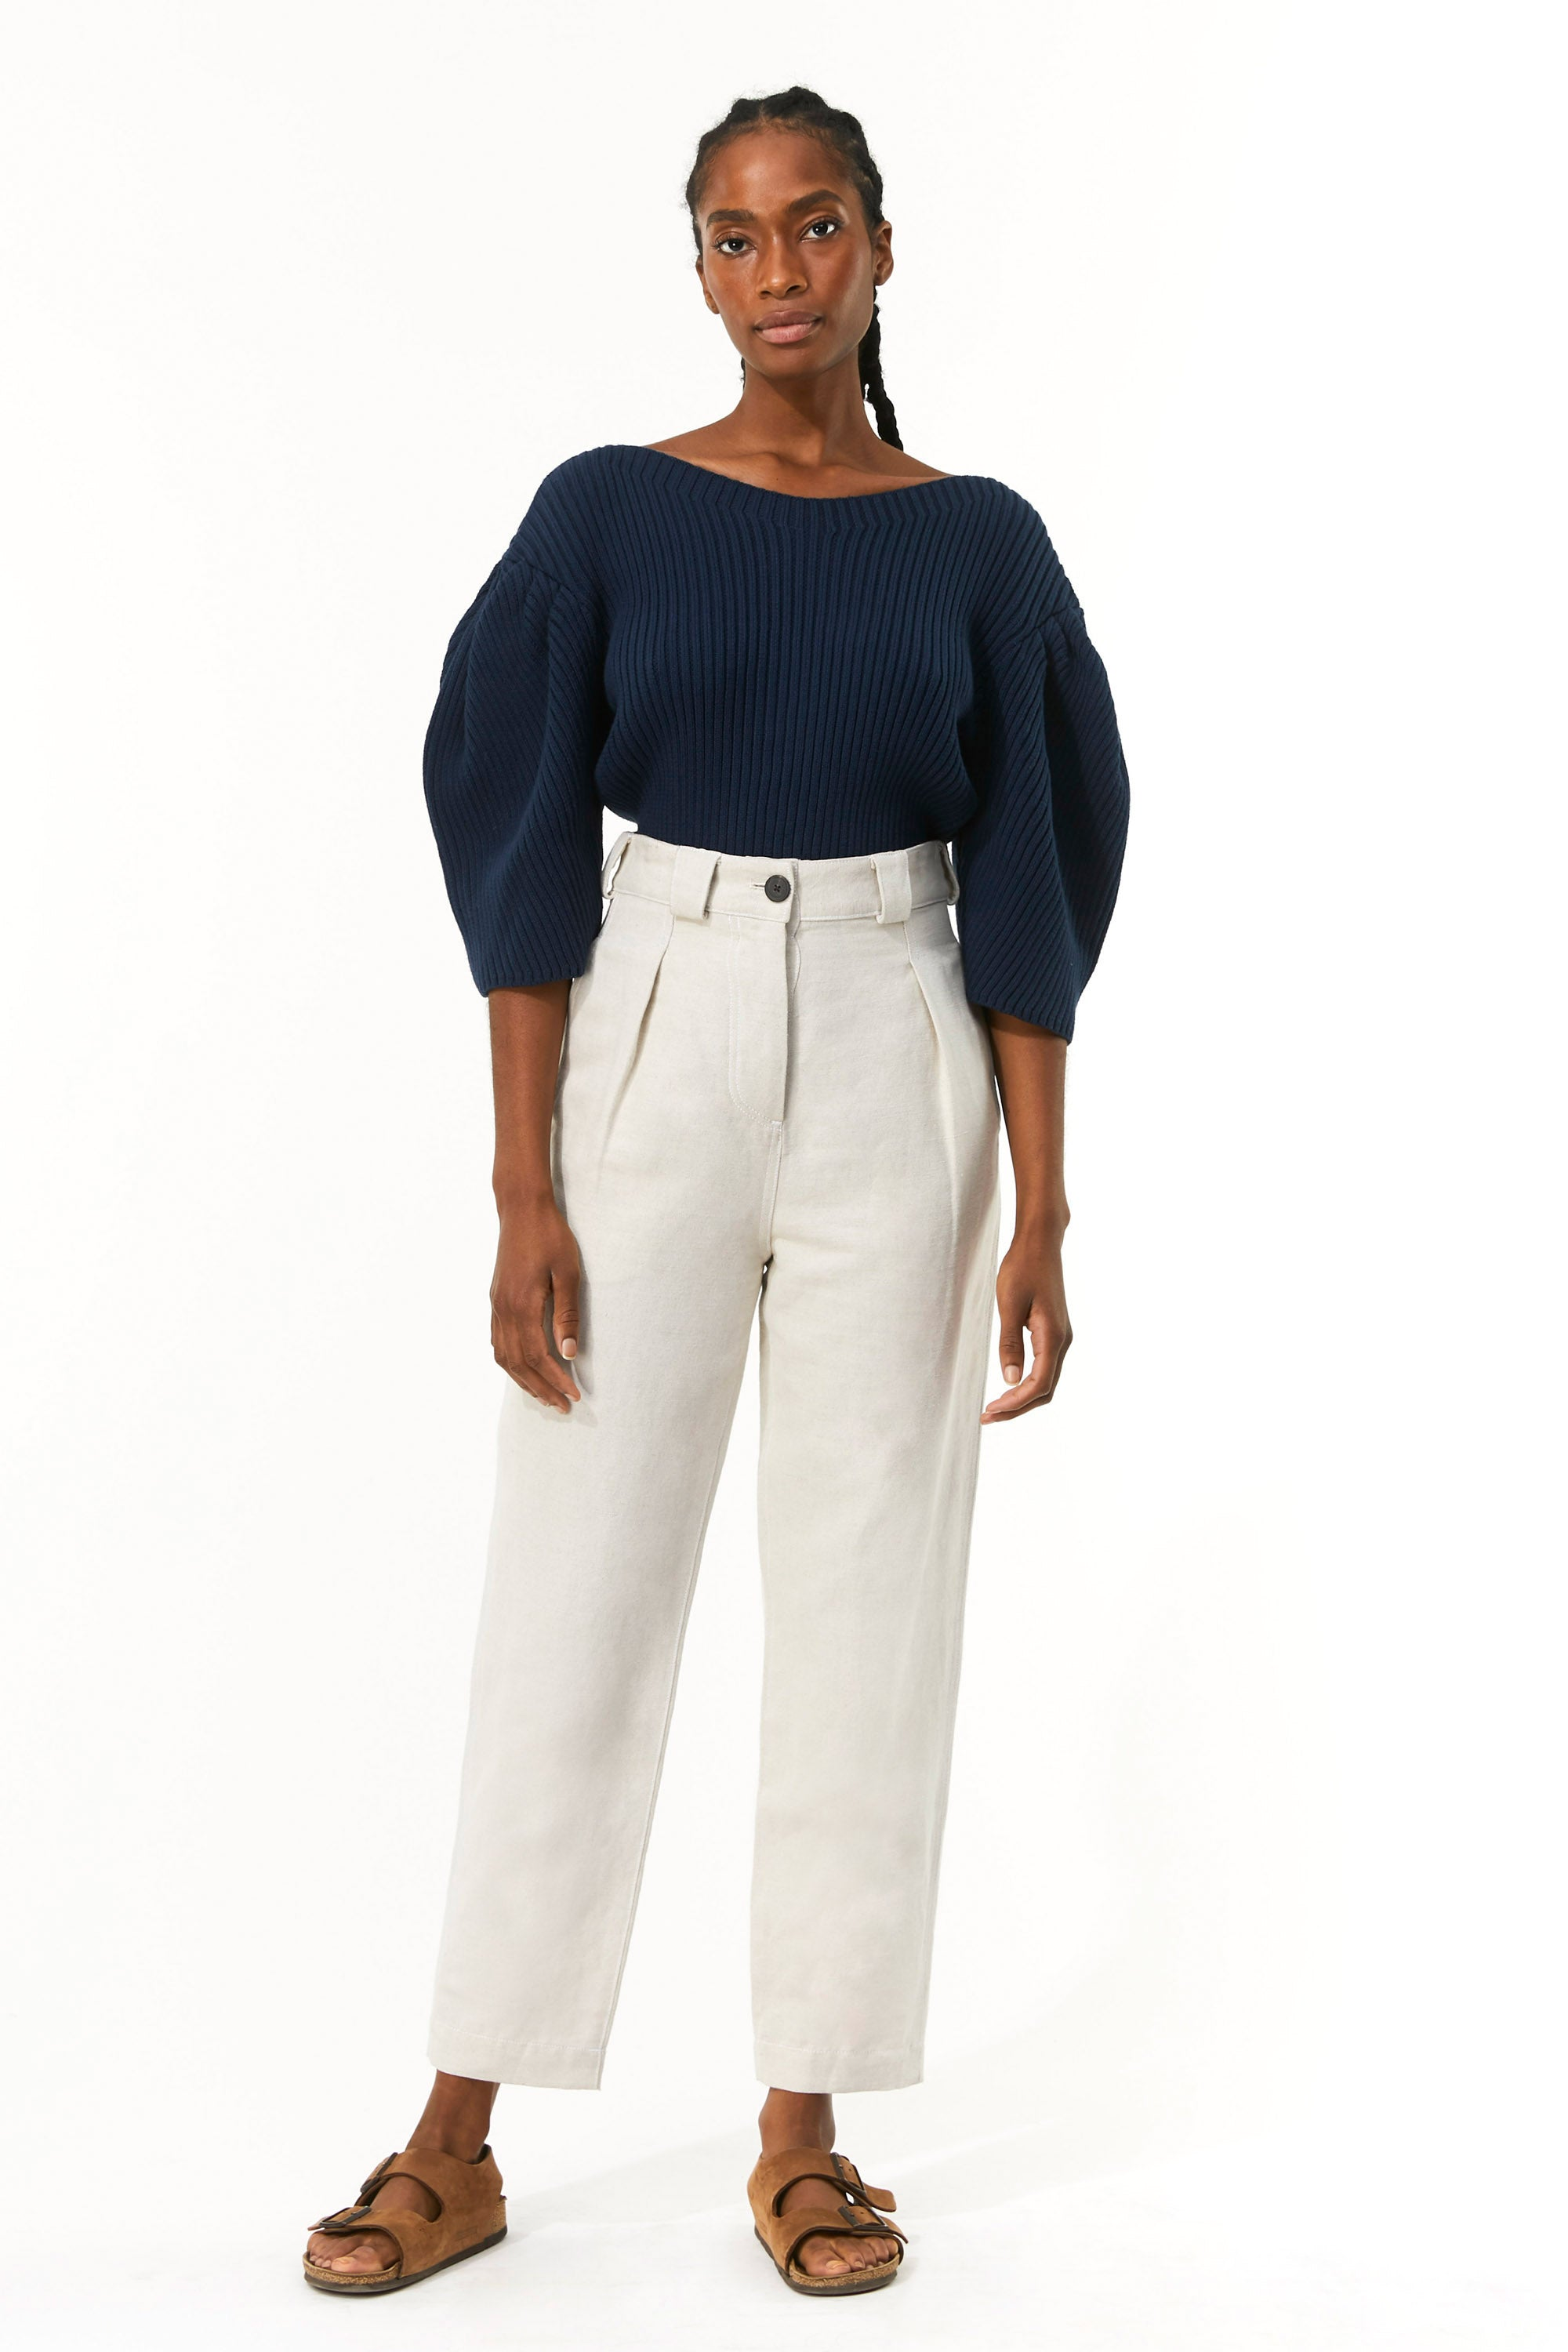 Mara Hoffman Indigo Inga Sweater in organic cotton (front)